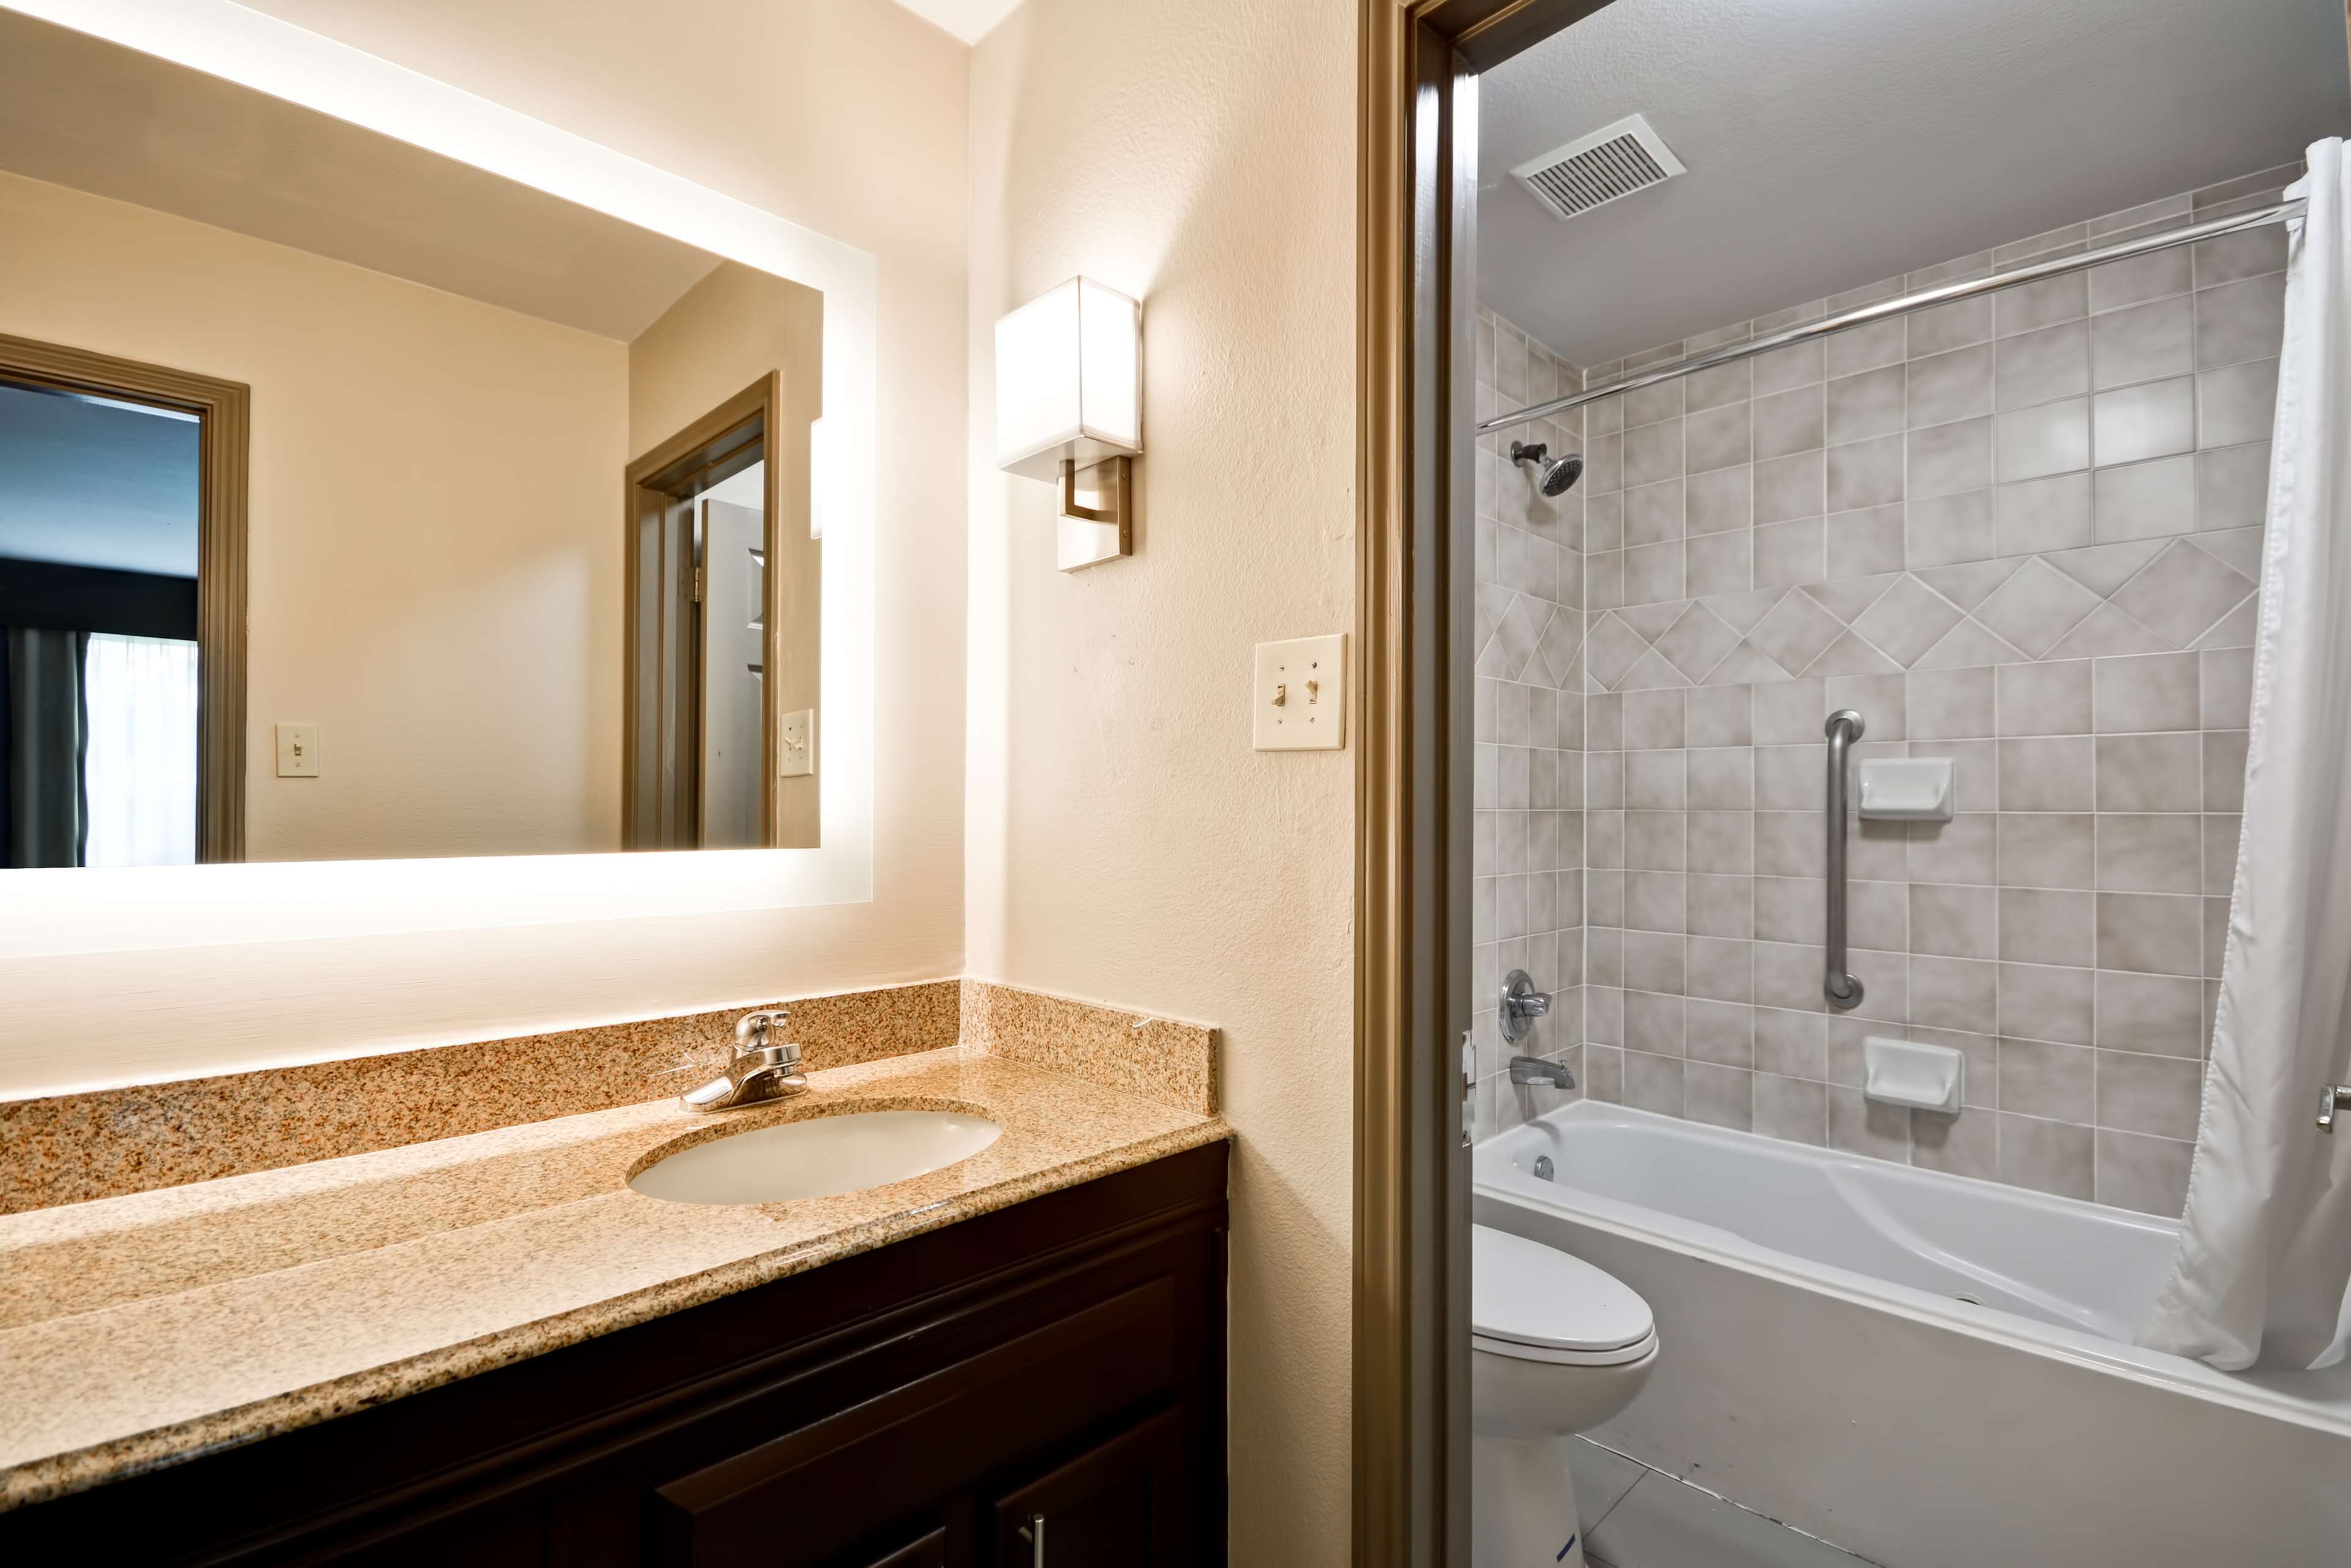 Homewood Suites by Hilton Dallas-Lewisville image 36